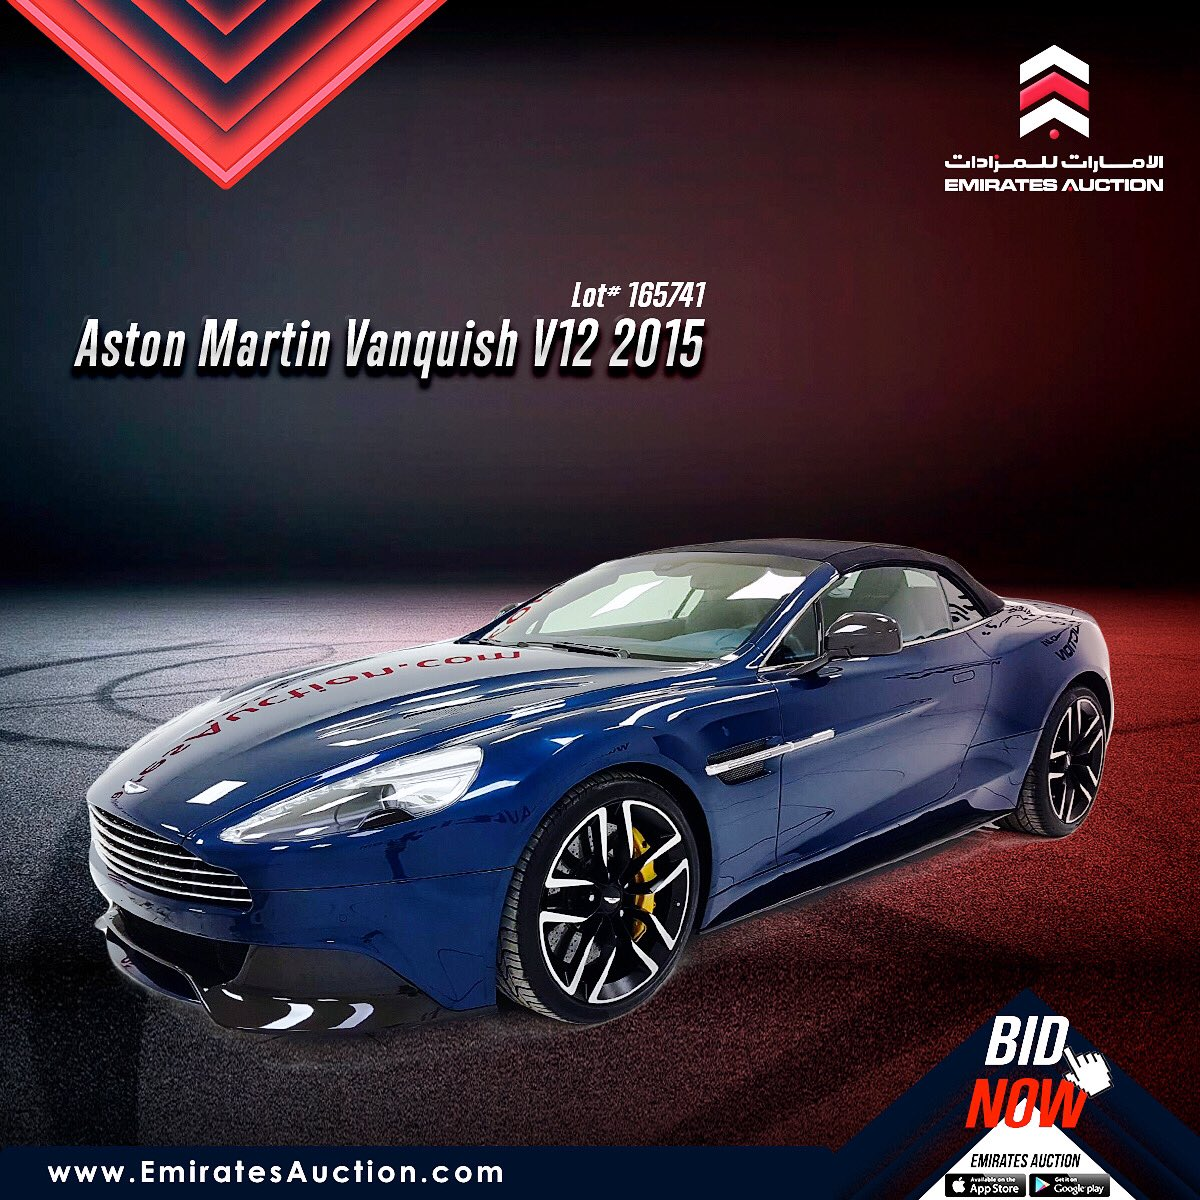 Emirates Auction الامارات للمزادات On Twitter Aston Martin Vanquish V12 2015 Is Available In Auction Visit Our Website Or Download Our App To See Many More Start Bidding Now Lot 165741